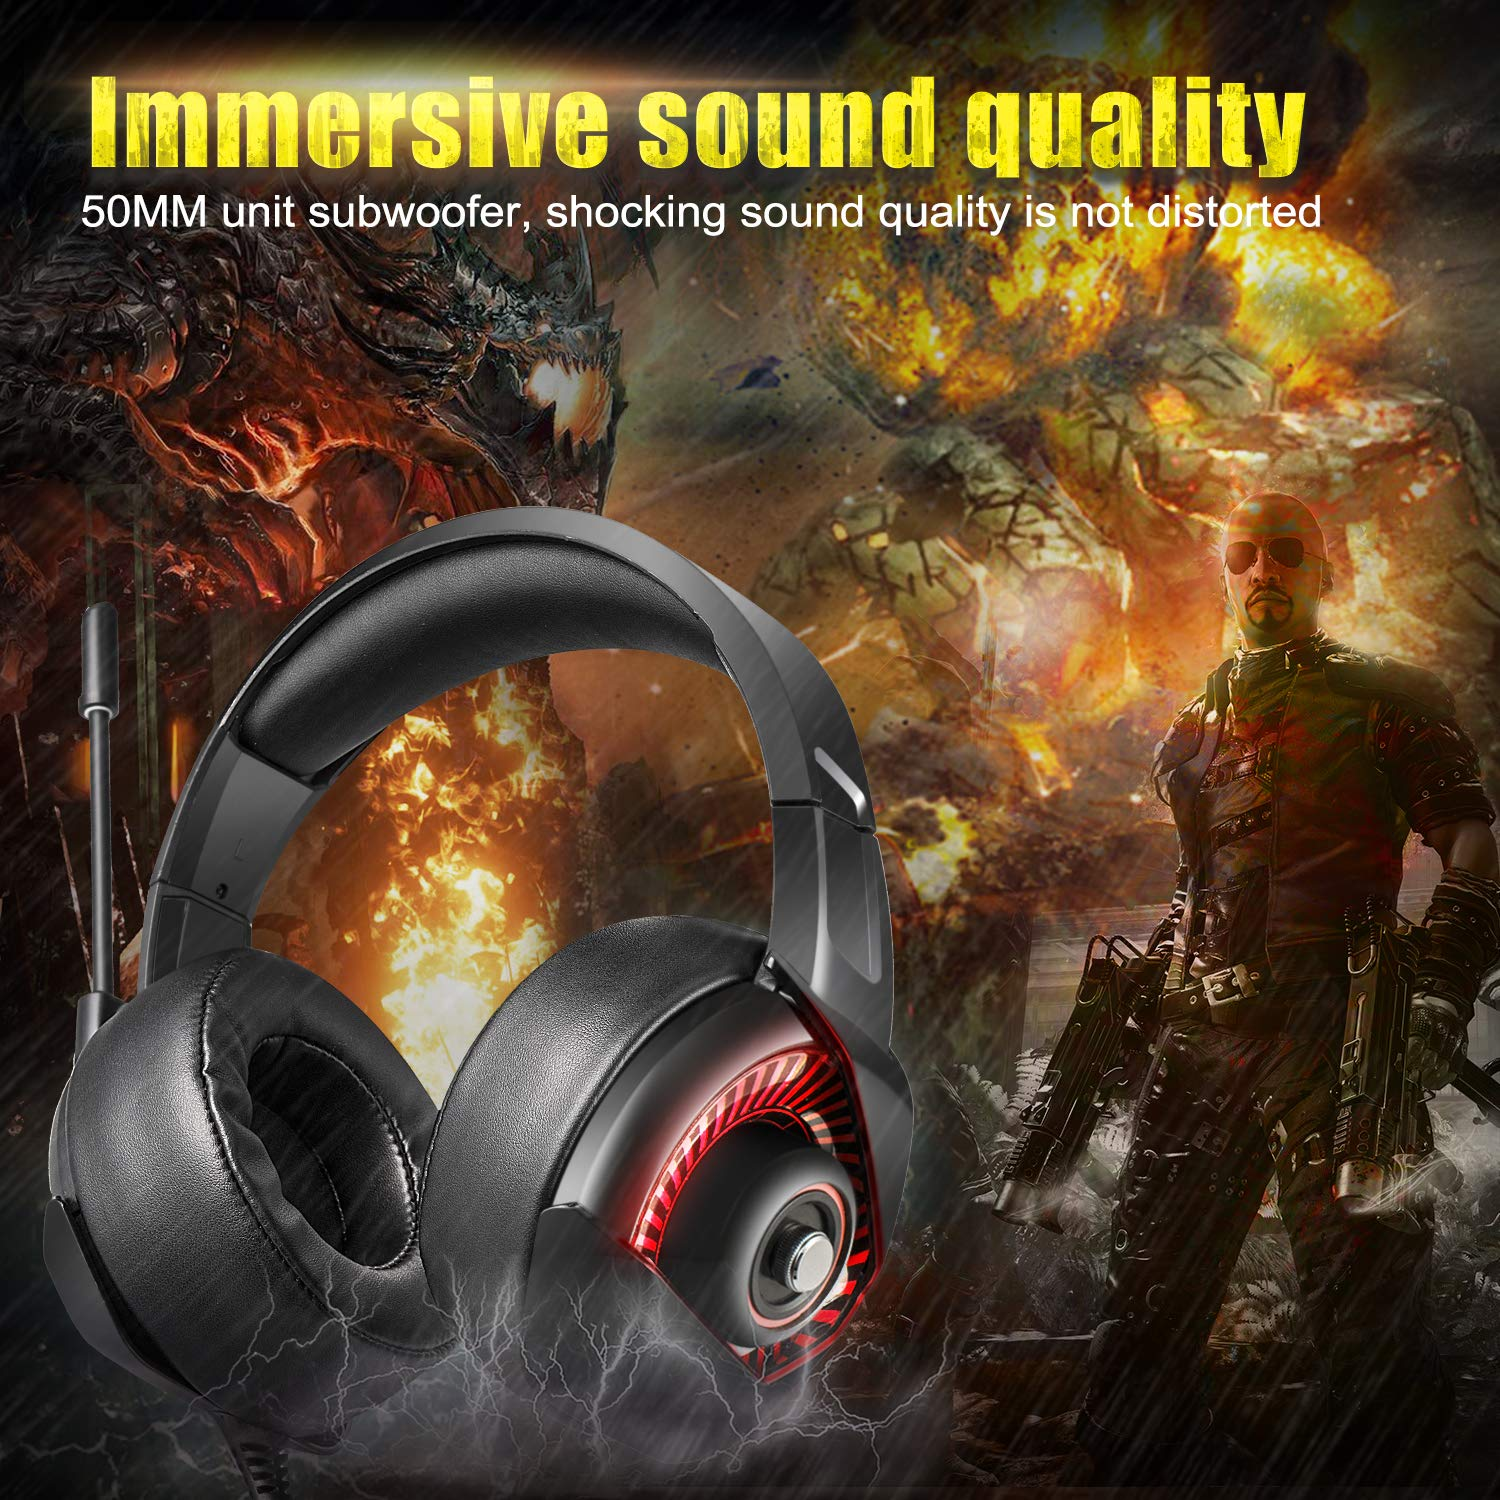 Amazon.com: Gaming Headset for Xbox One PS4 PC, ONIKUMA 7.1 Surround Stereo Sound and Noise Cancelling Over Ear Headphones with Flexible Microphone, ...